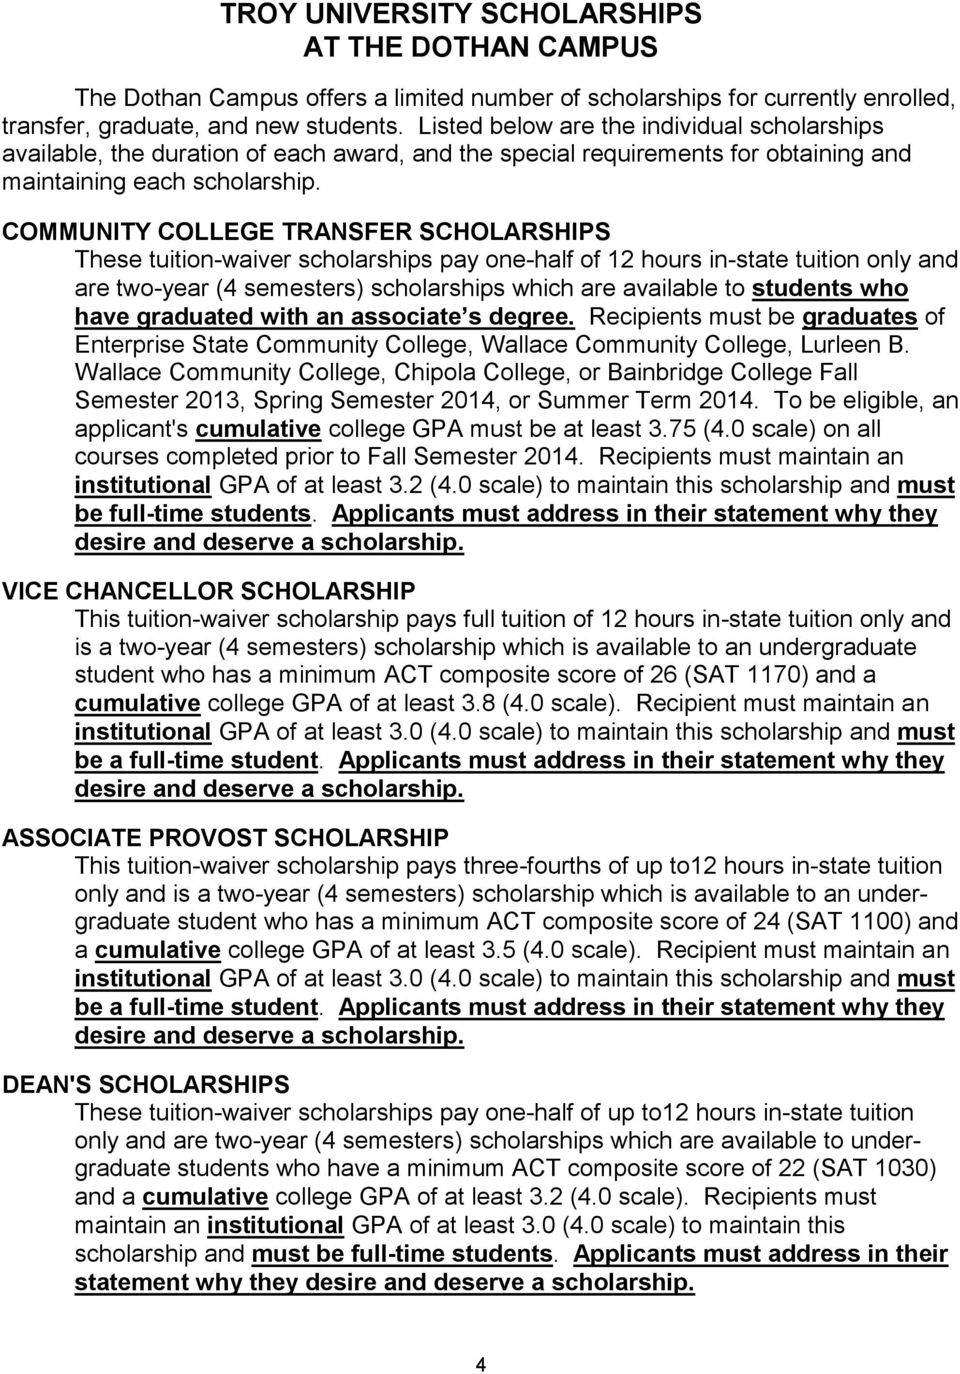 COMMUNITY COLLEGE TRANSFER SCHOLARSHIPS These tuition-waiver scholarships pay one-half of 12 hours in-state tuition only and are two-year (4 semesters) scholarships which are available to students